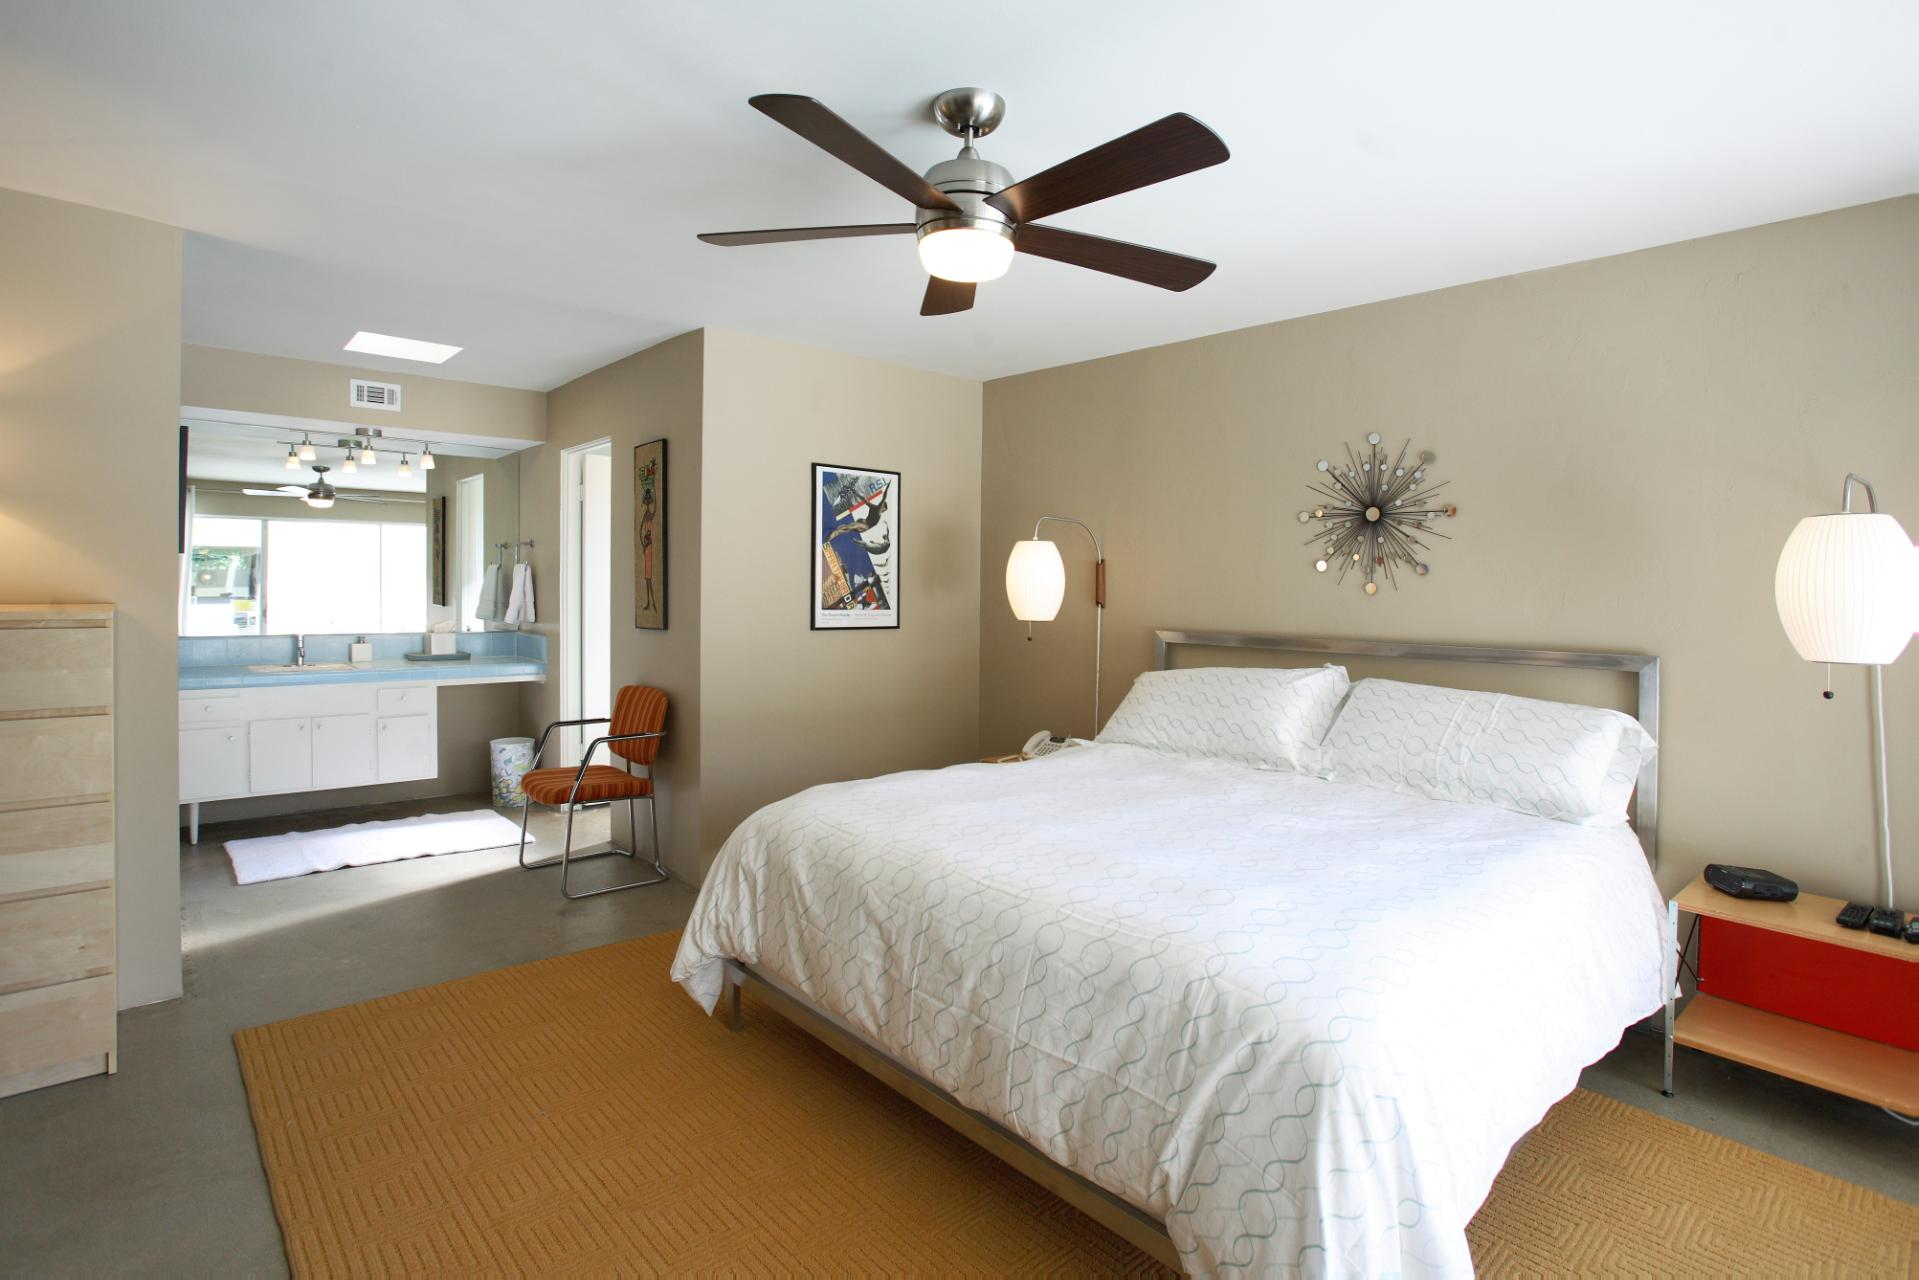 Very Simple Mid Century Modern Ceiling Fan Sculpture Install A